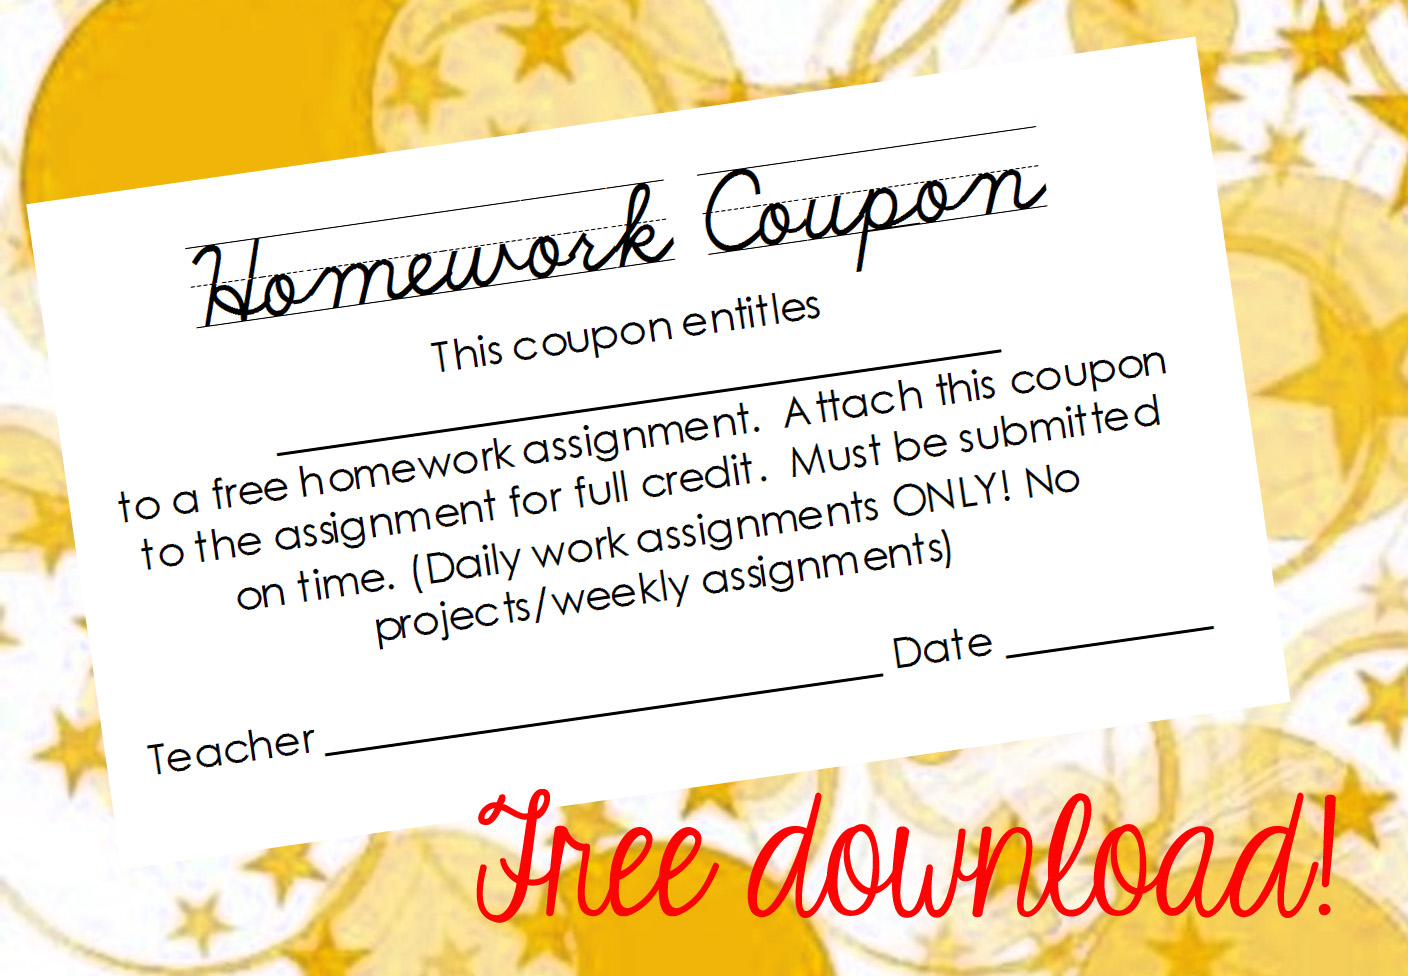 No homework coupons for kids